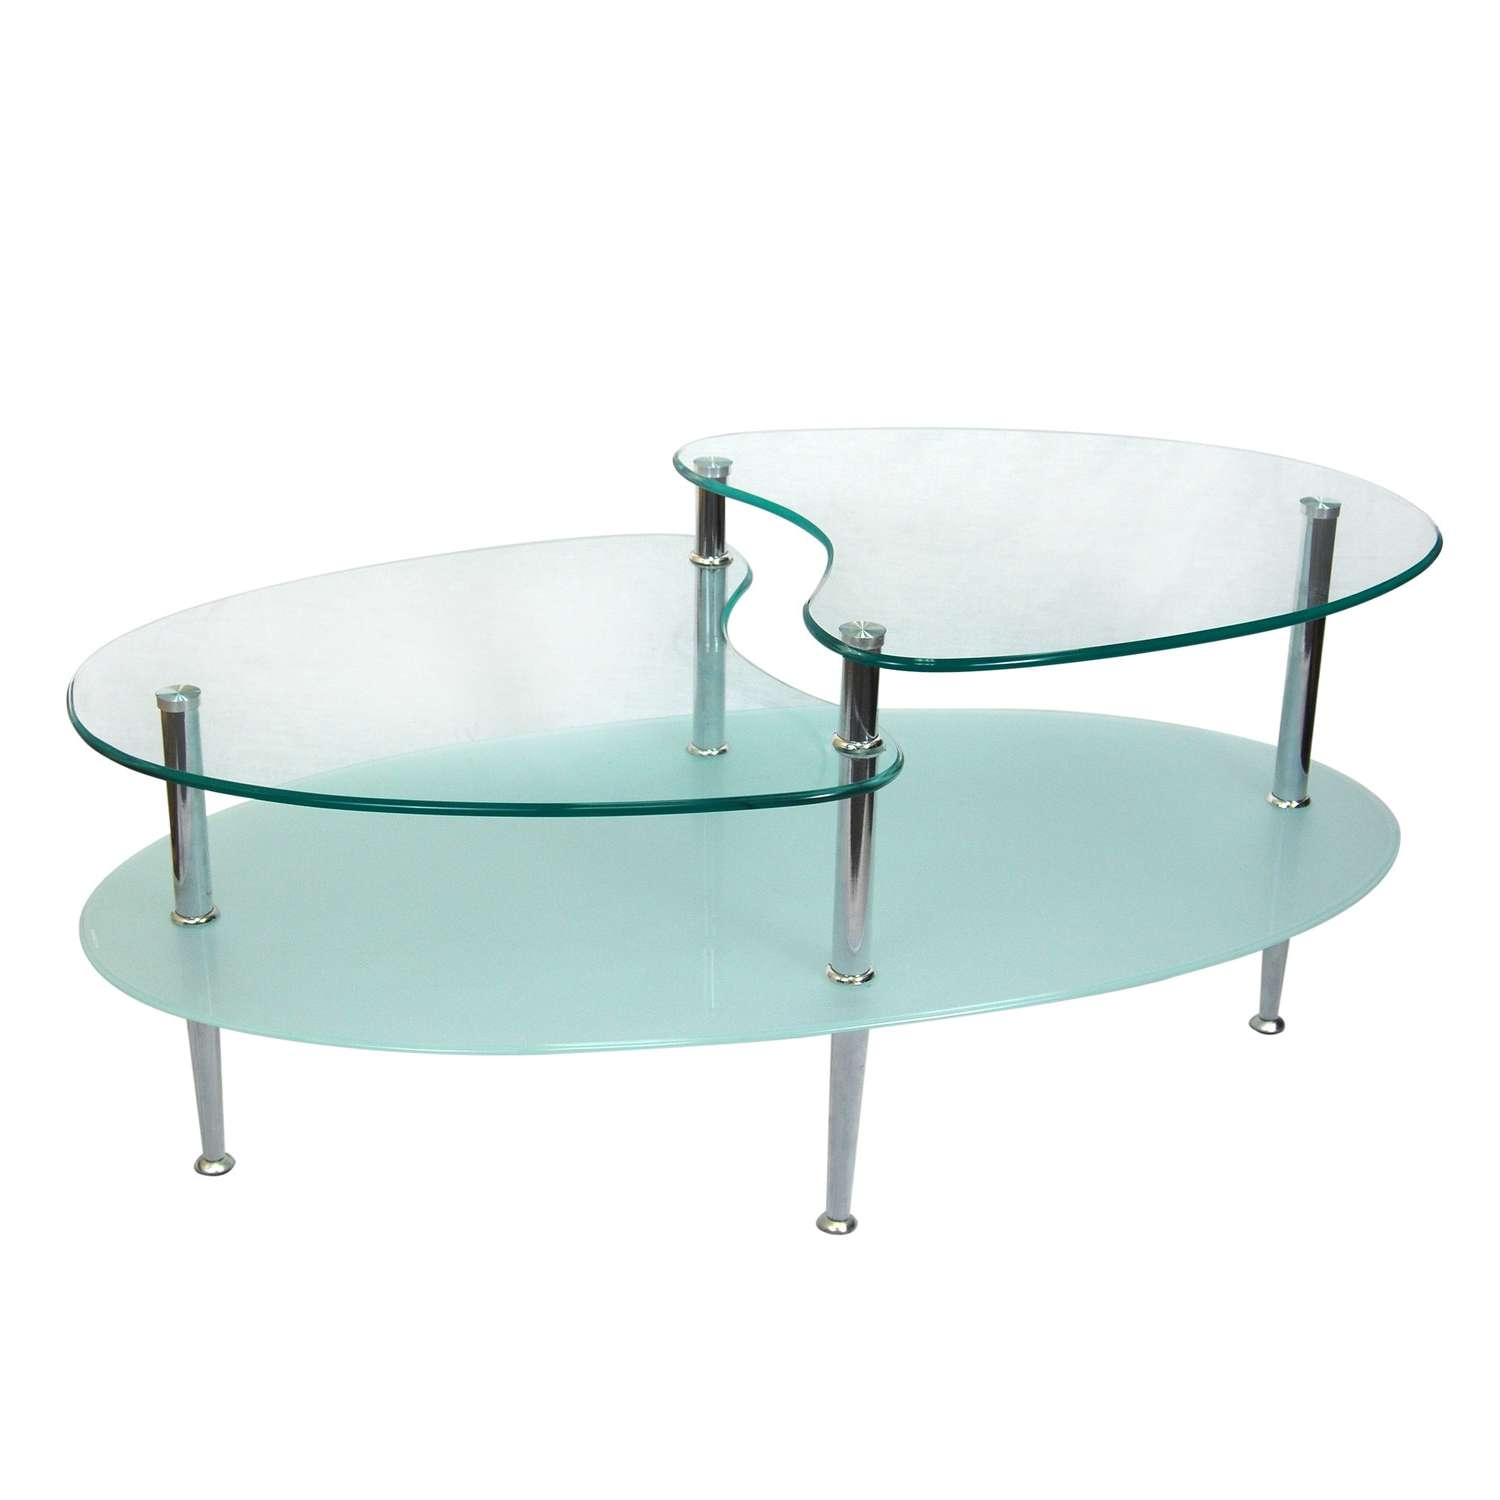 Decorations : Unique Oval Coffee Tables Wayfair With Stailess Base Regarding Preferred Wayfair Glass Coffee Tables (View 2 of 20)